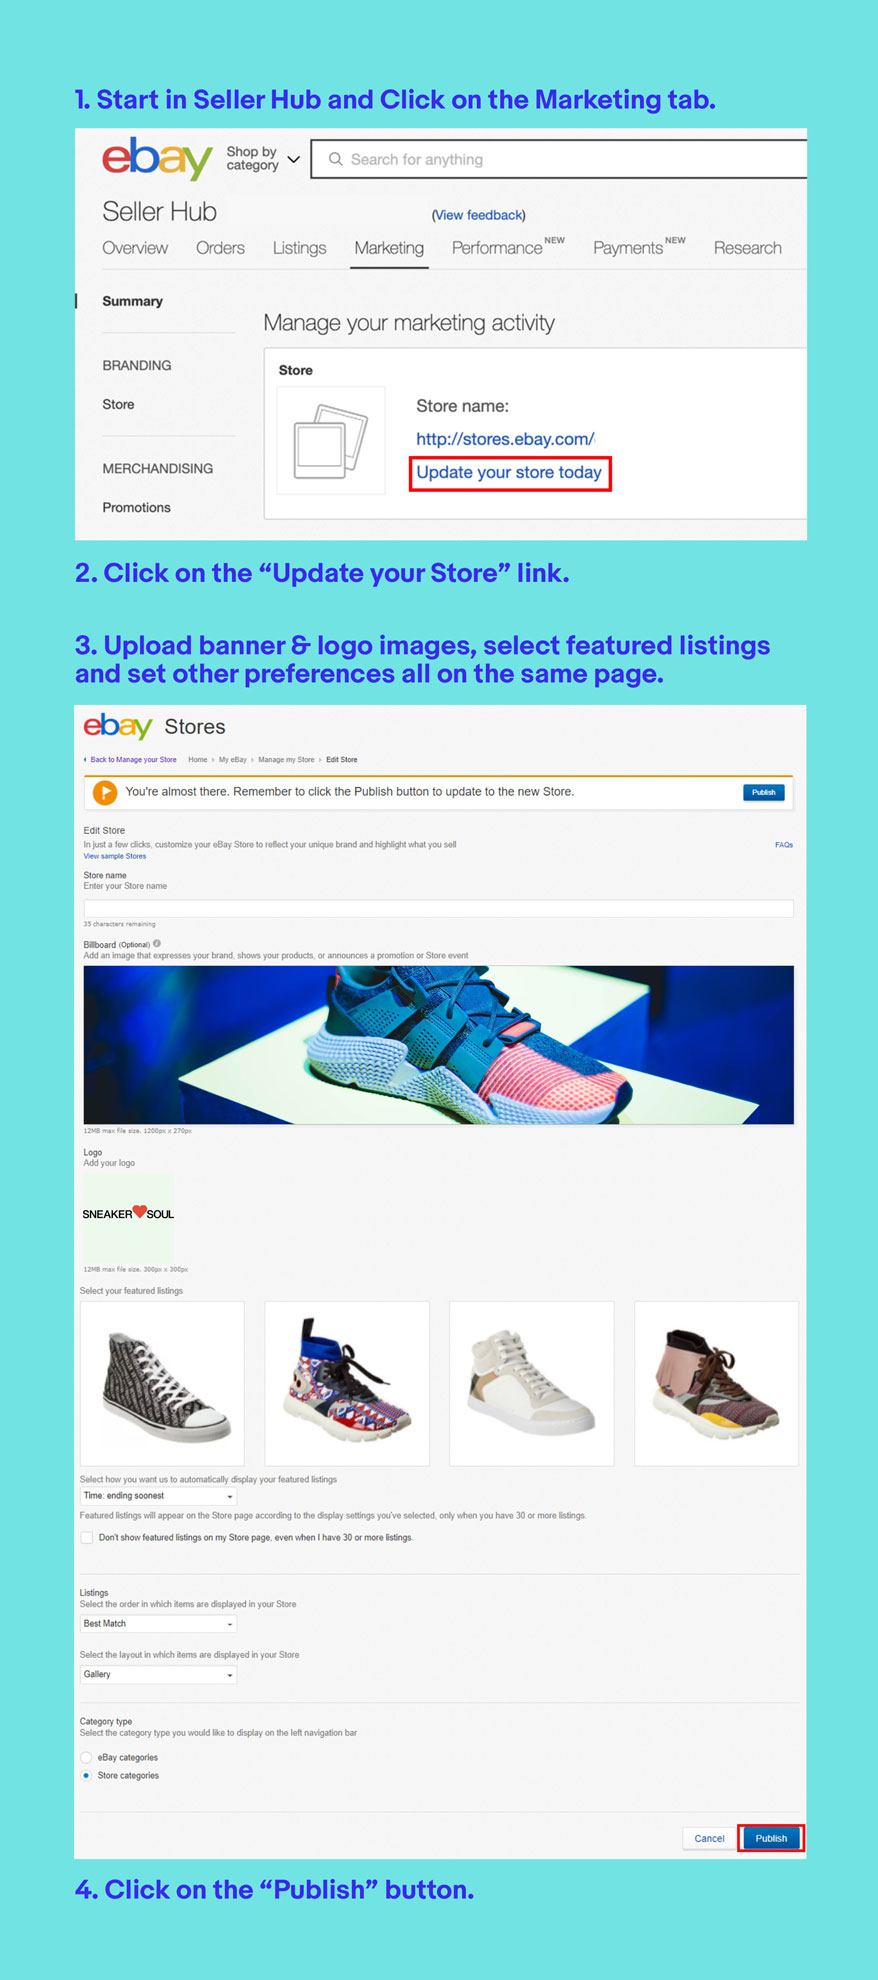 edit your store: steps 1 - 4